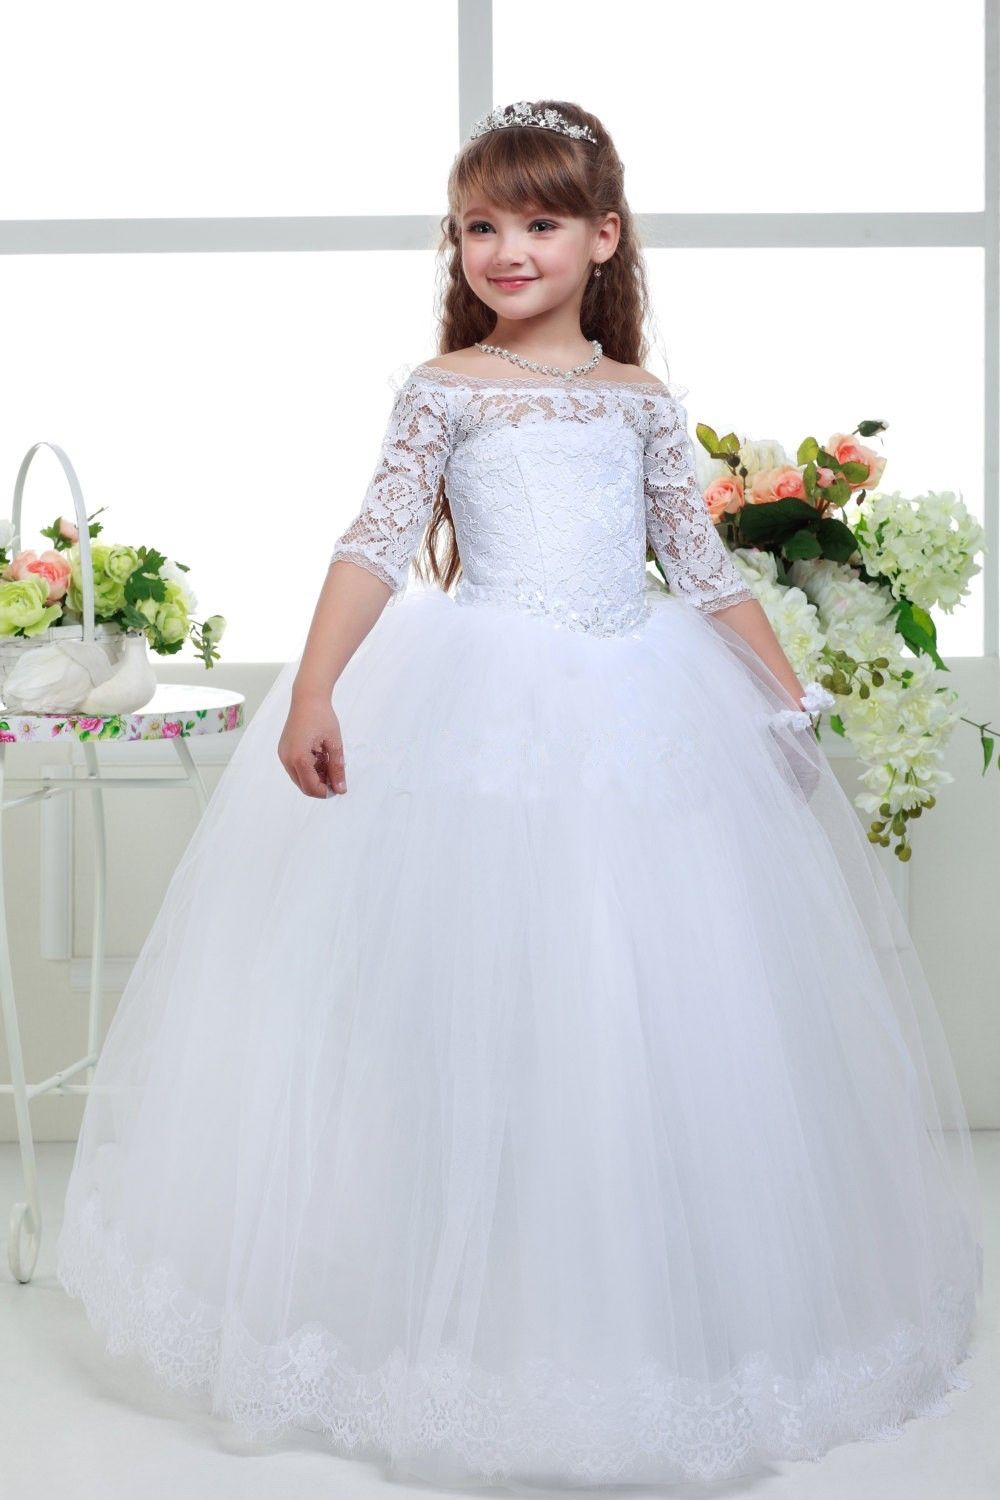 New Long Lace Ball Gown First Communion Dresses For Girls 2016 A-line High Collar Flower Girl Dresses kids prom evening gowns